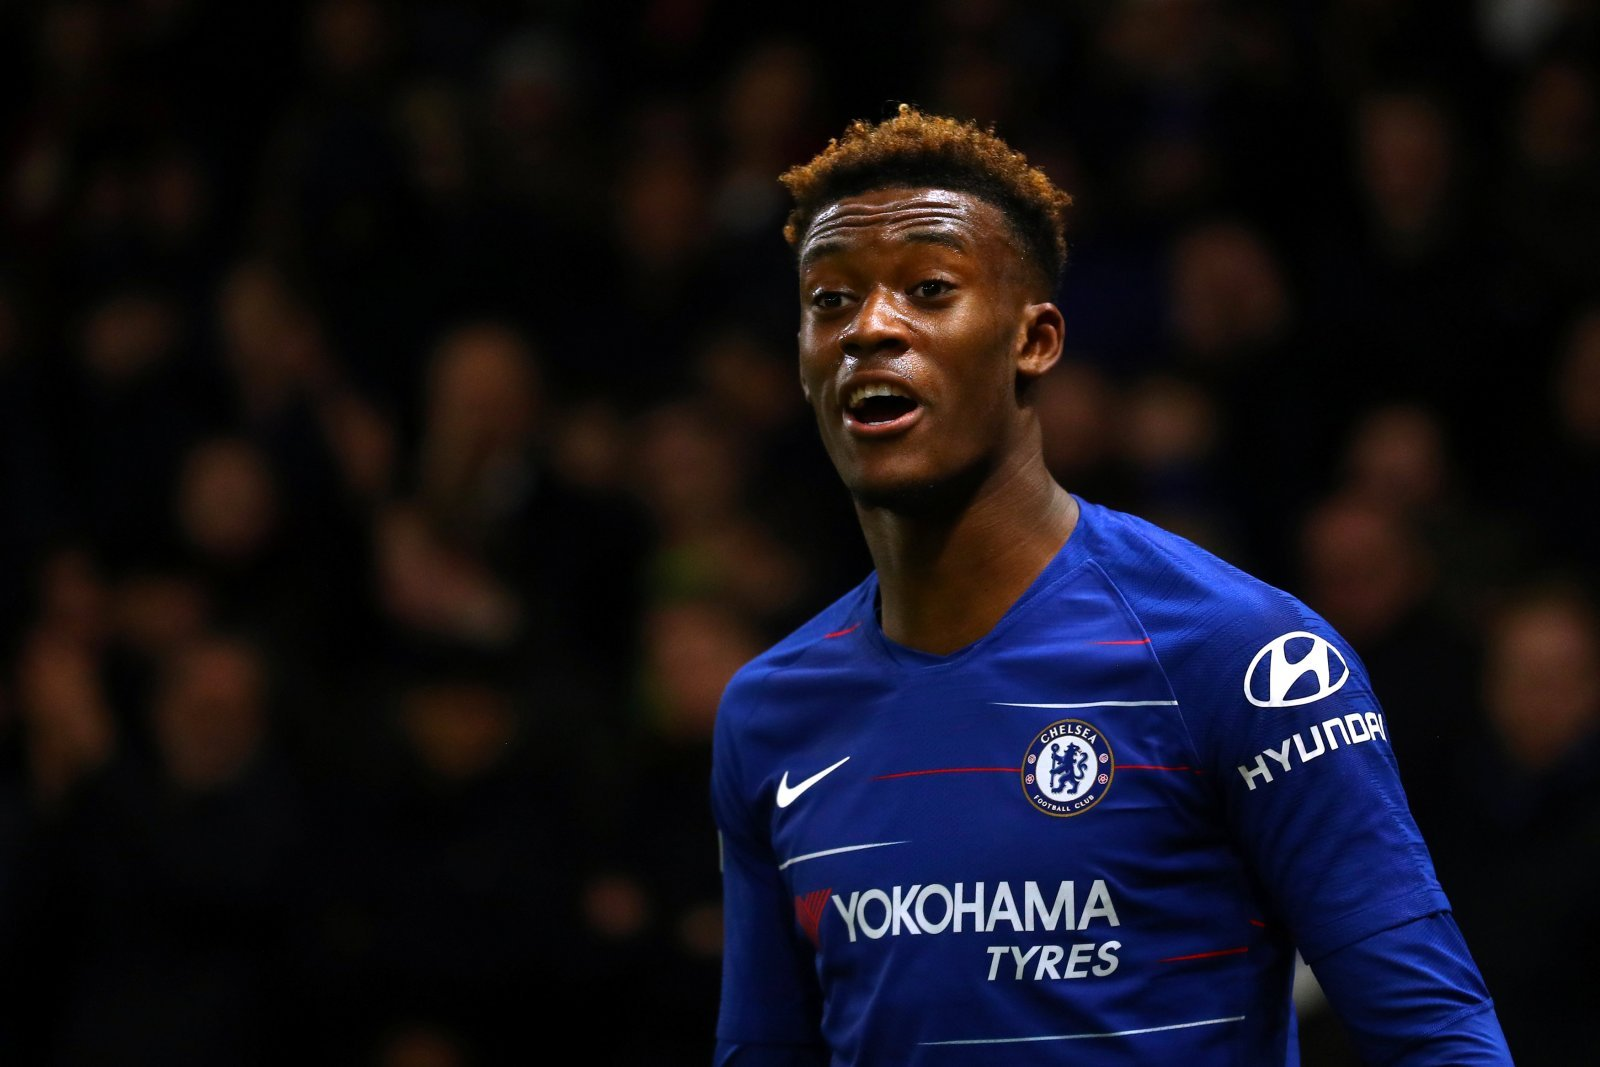 Chelsea fans on Twitter were fuming as Hudson-Odoi missed City clash